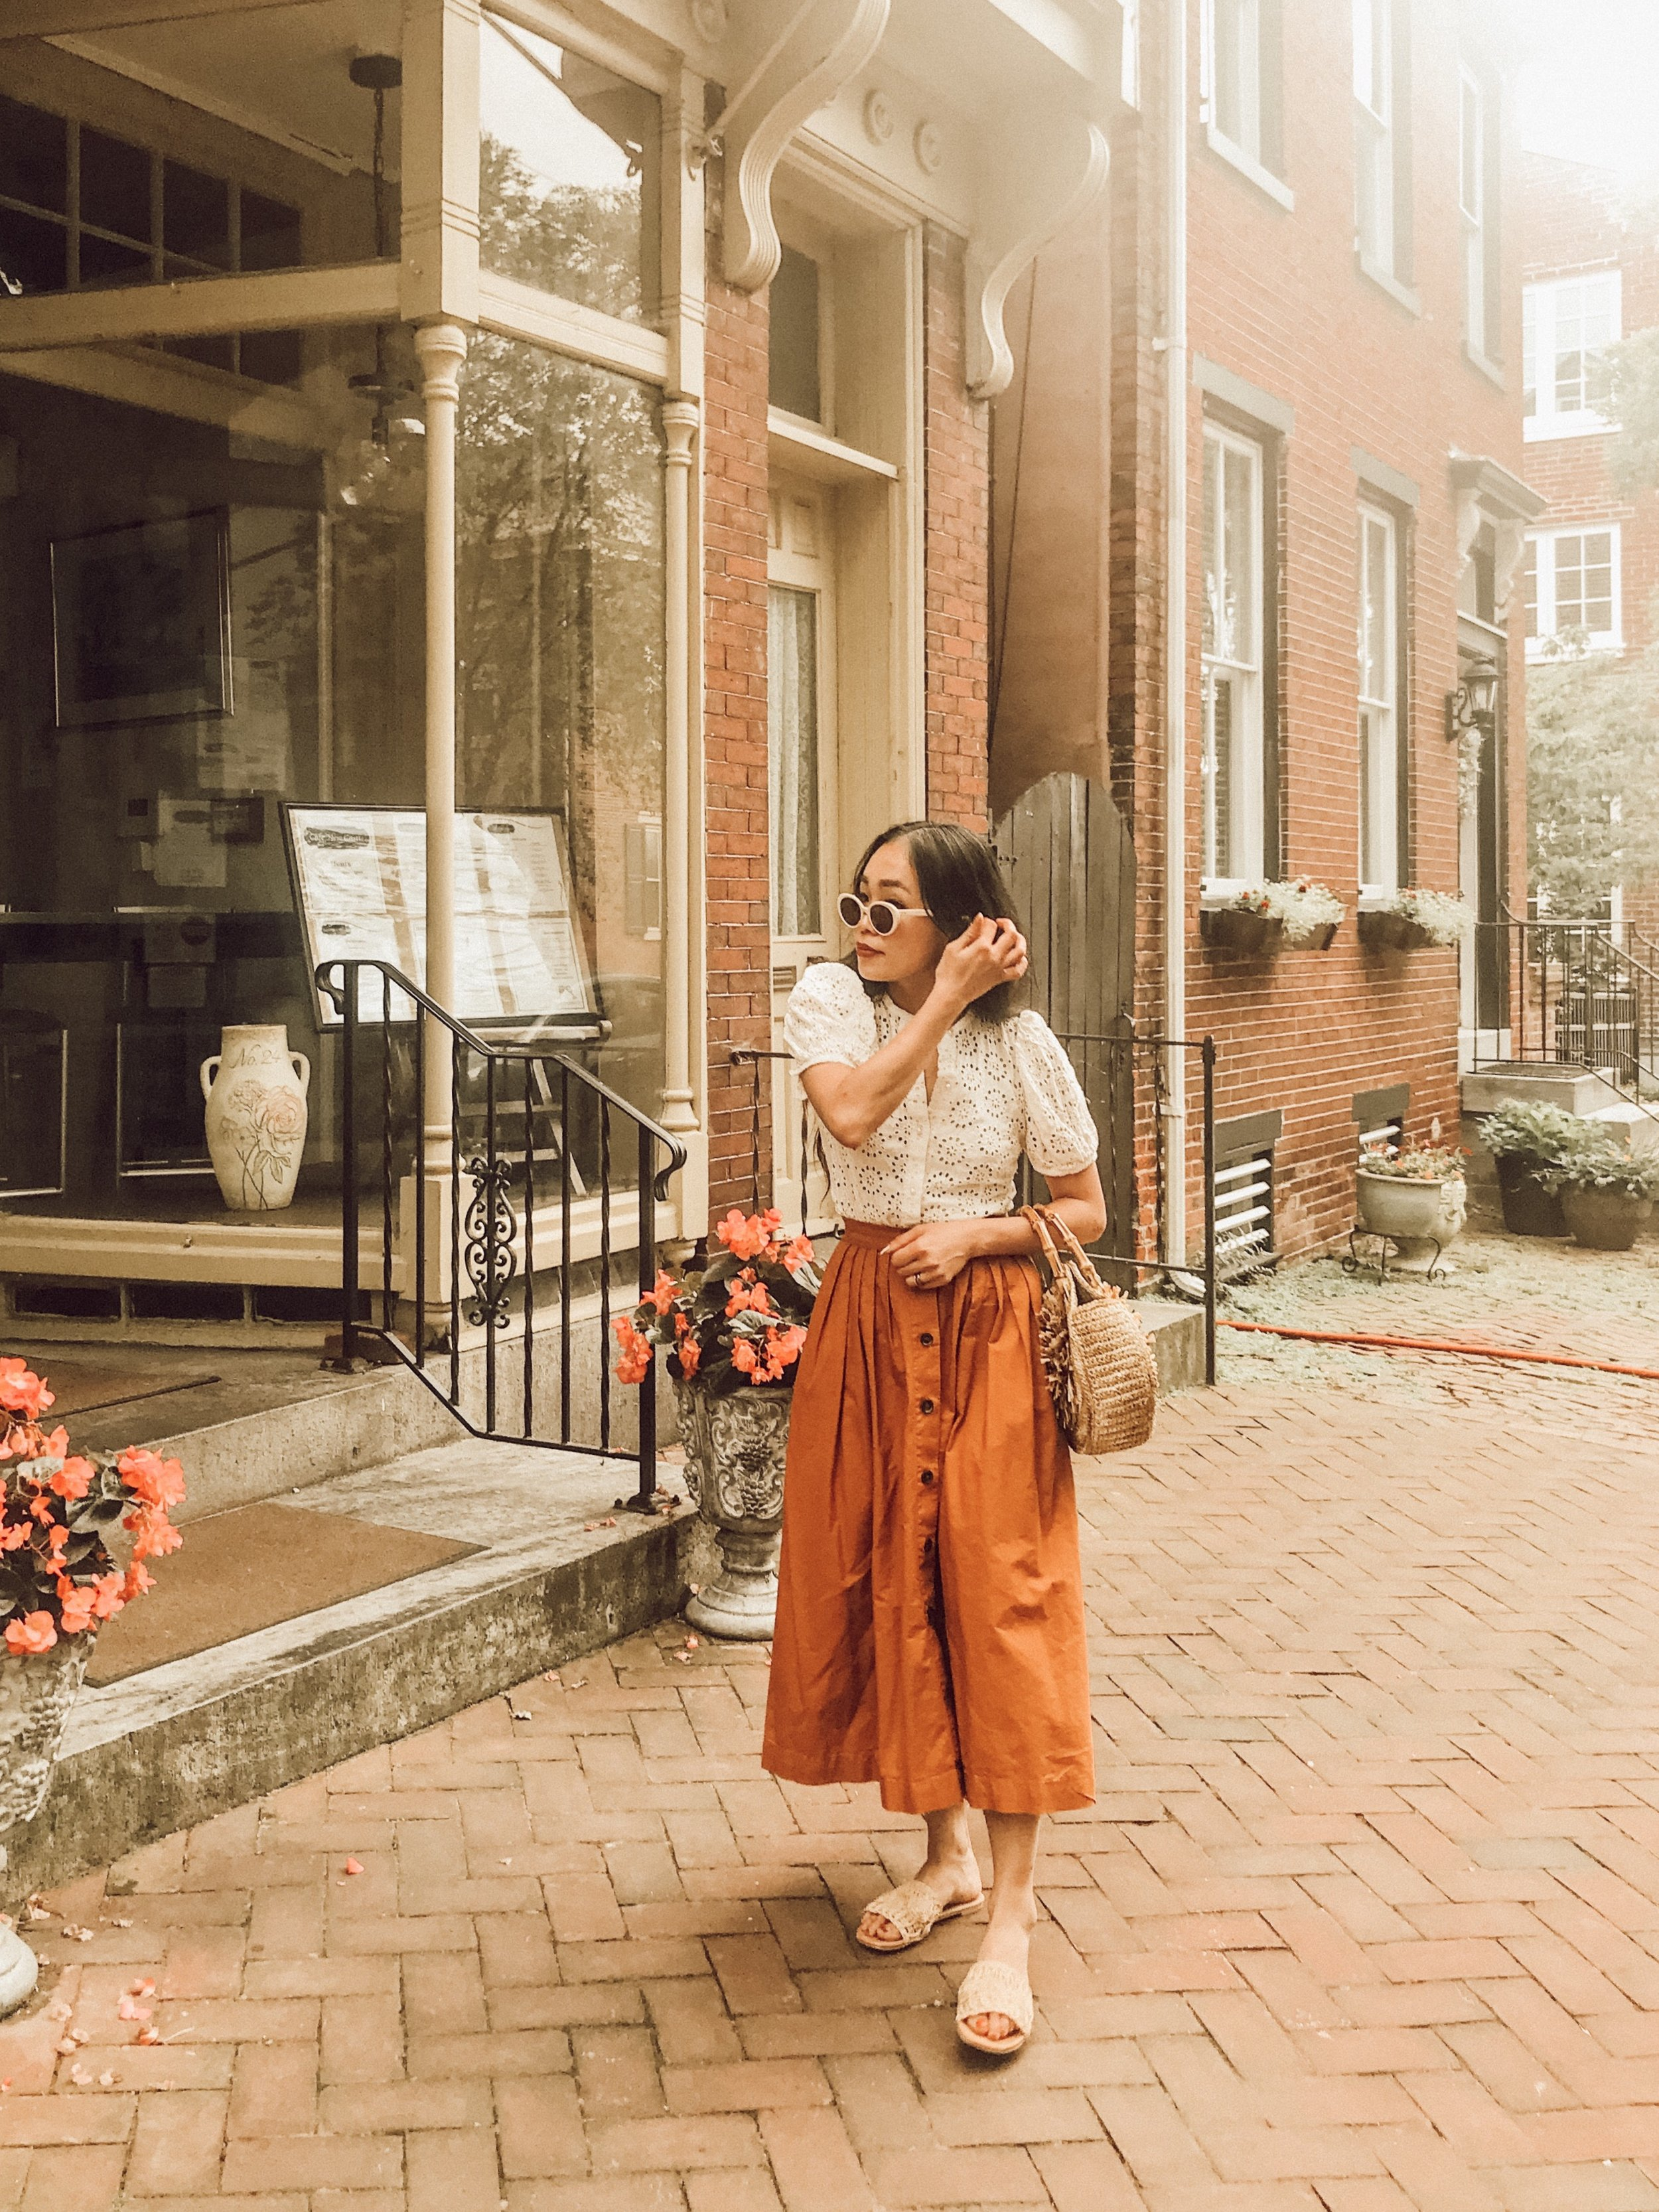 Day 2: The 40's Vibe - Straw items with vintage puffy sleeve blouse and A-line skirt. Doesn't this outfit look like it's from some old country movies?